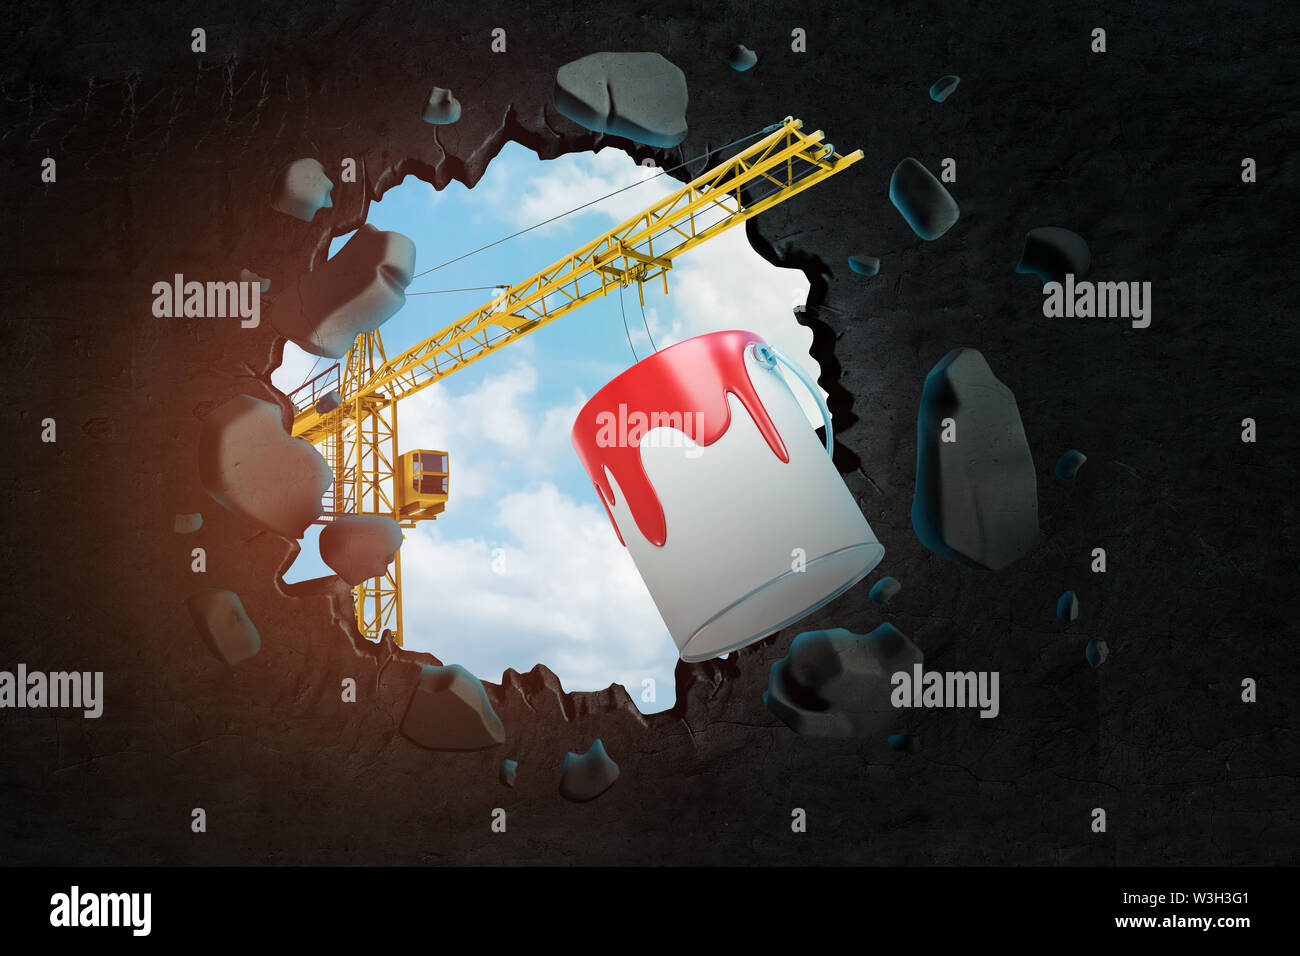 3d rendering of construction crane and red paint bucket breaking black wall. Digital art. Paint supplies. Objects and materials. - Stock Image